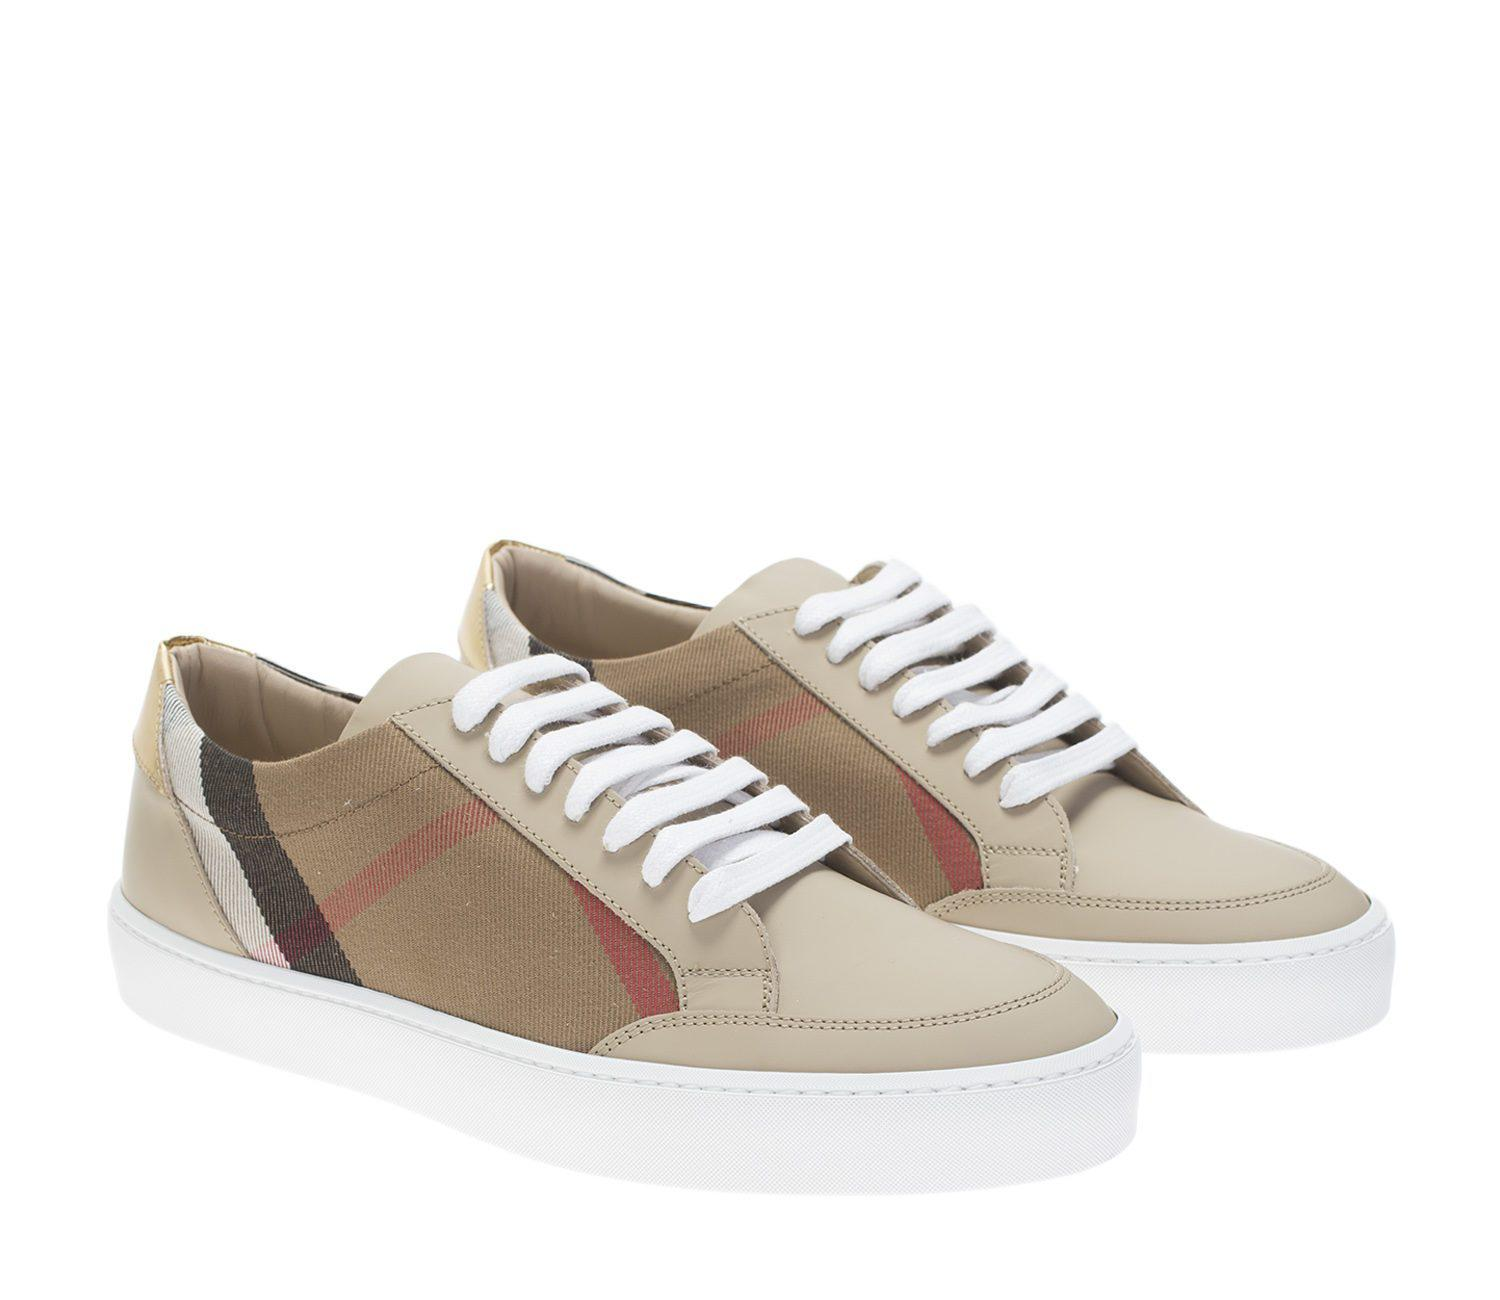 Burberry Beige Canvas And Leather Reynold Sneakers in Natural